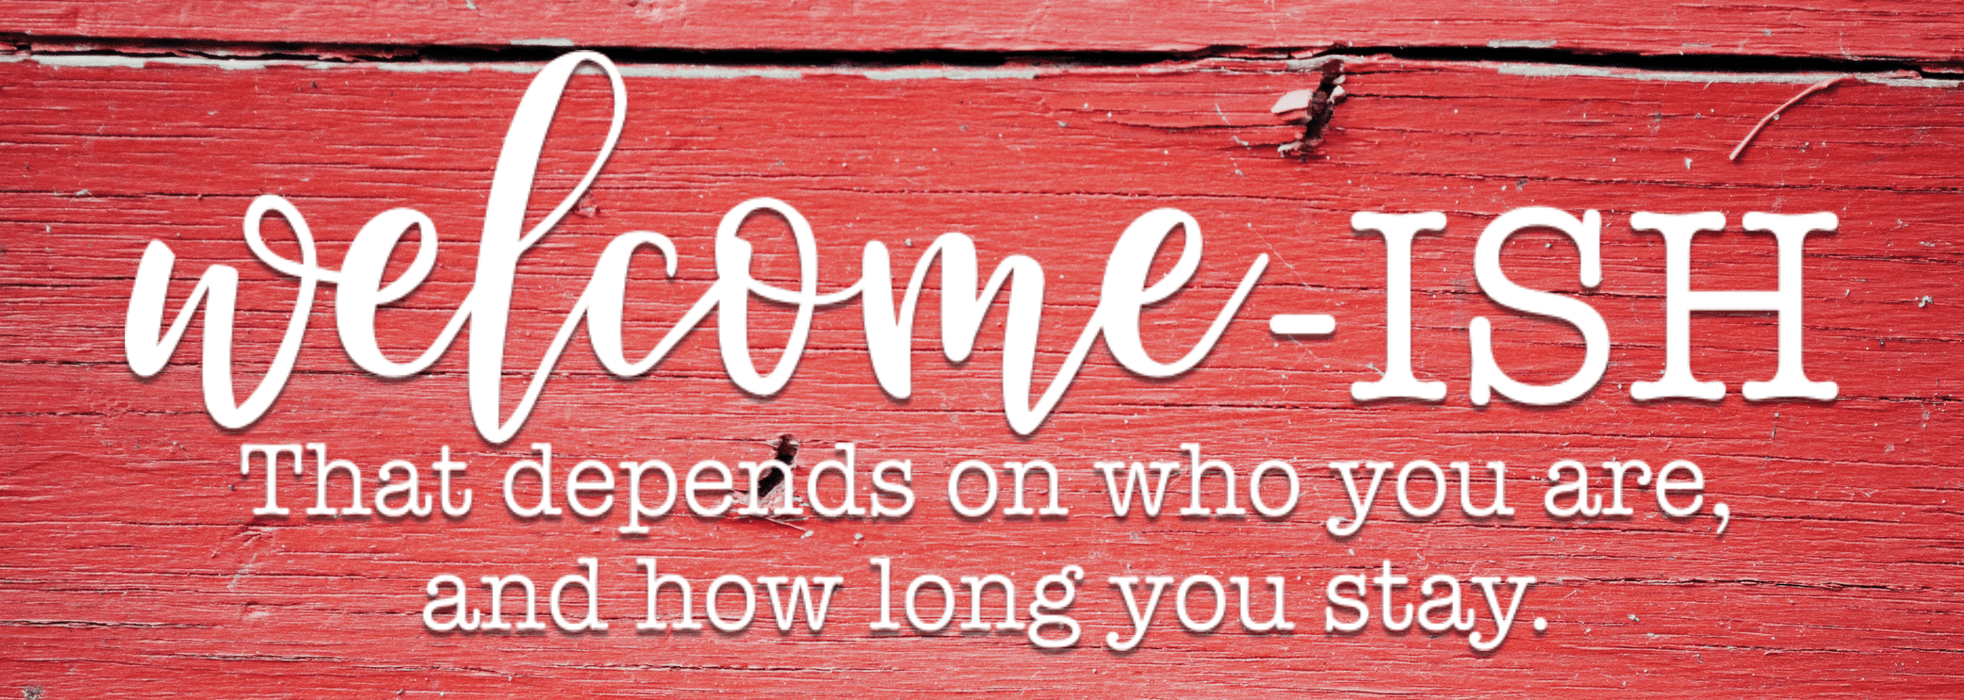 Welcome-ISH That Depends On Who You Are & How Long You Stay - Red Barn Wood